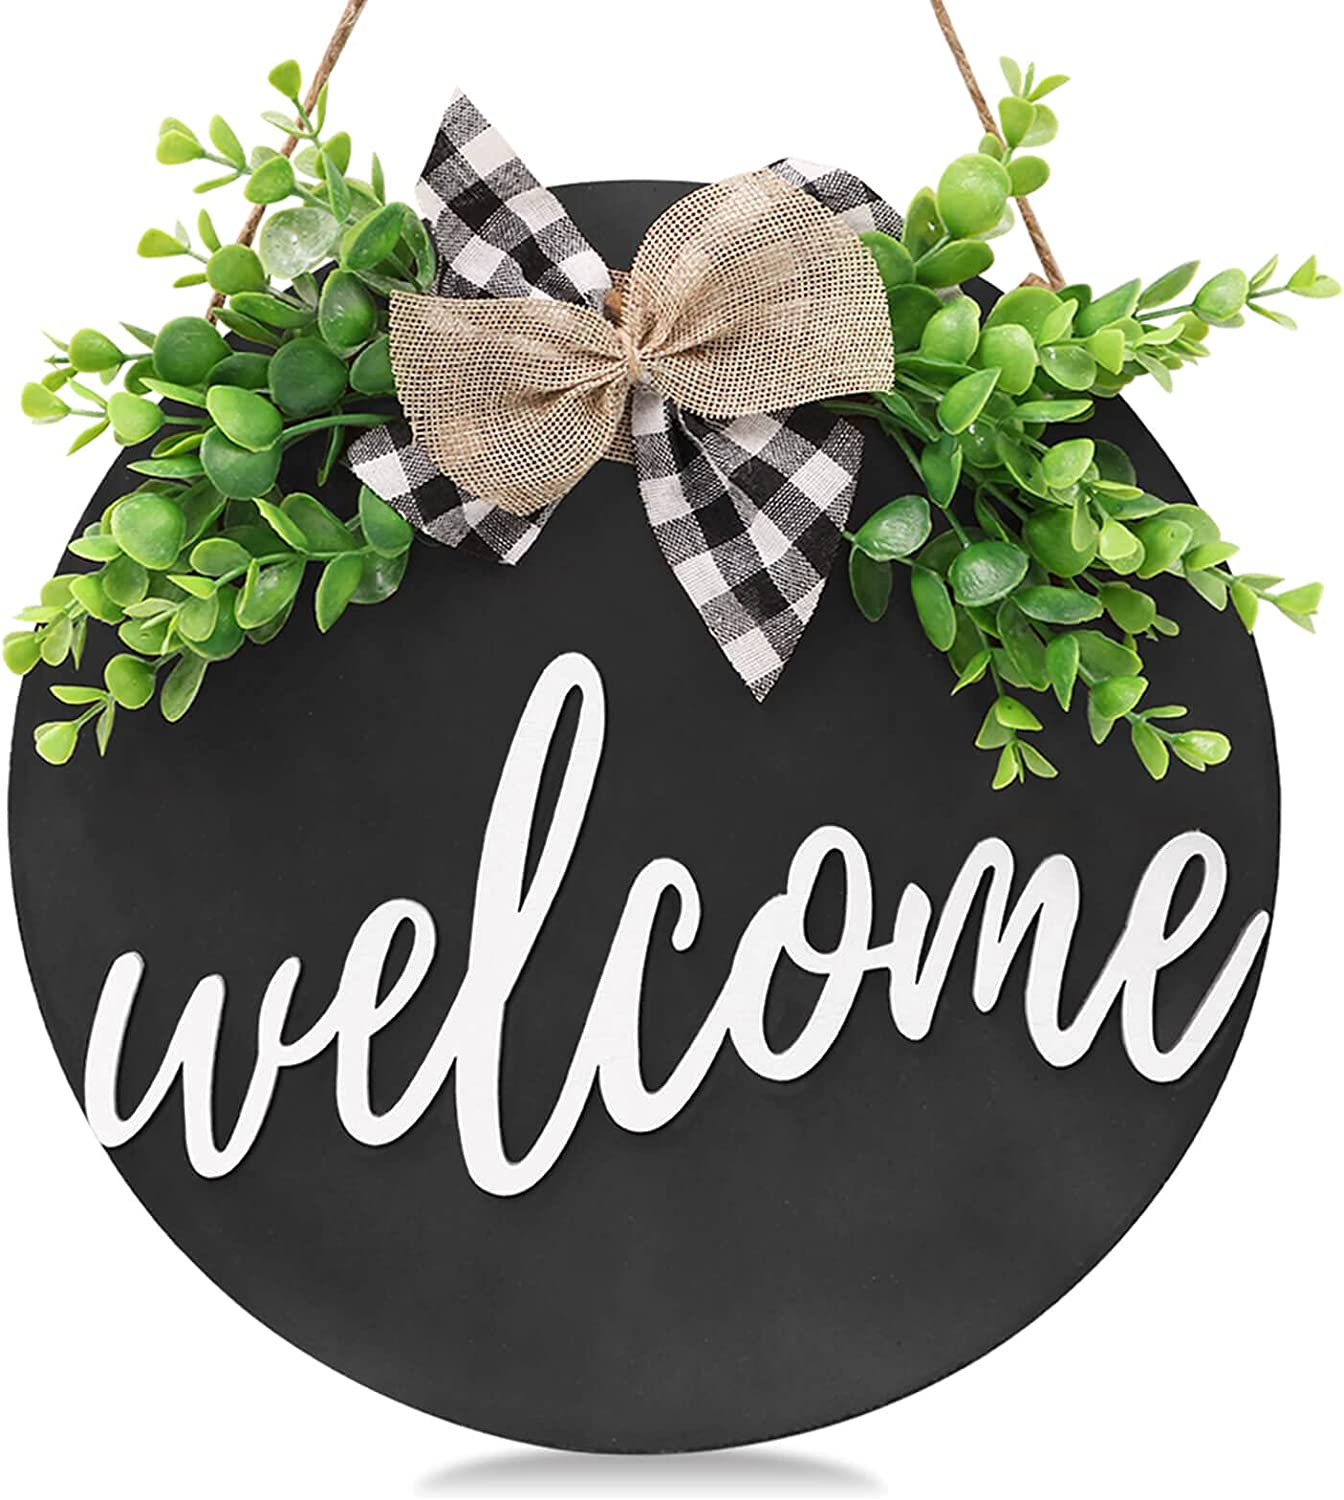 VIEFIN Welcome Wreath Sign for Farmhouse Front Porch Decor,3D Round Wood Sign with Greenery,Rustic Welcome Home Sign Porch Hanging Front Door Decorations,Black